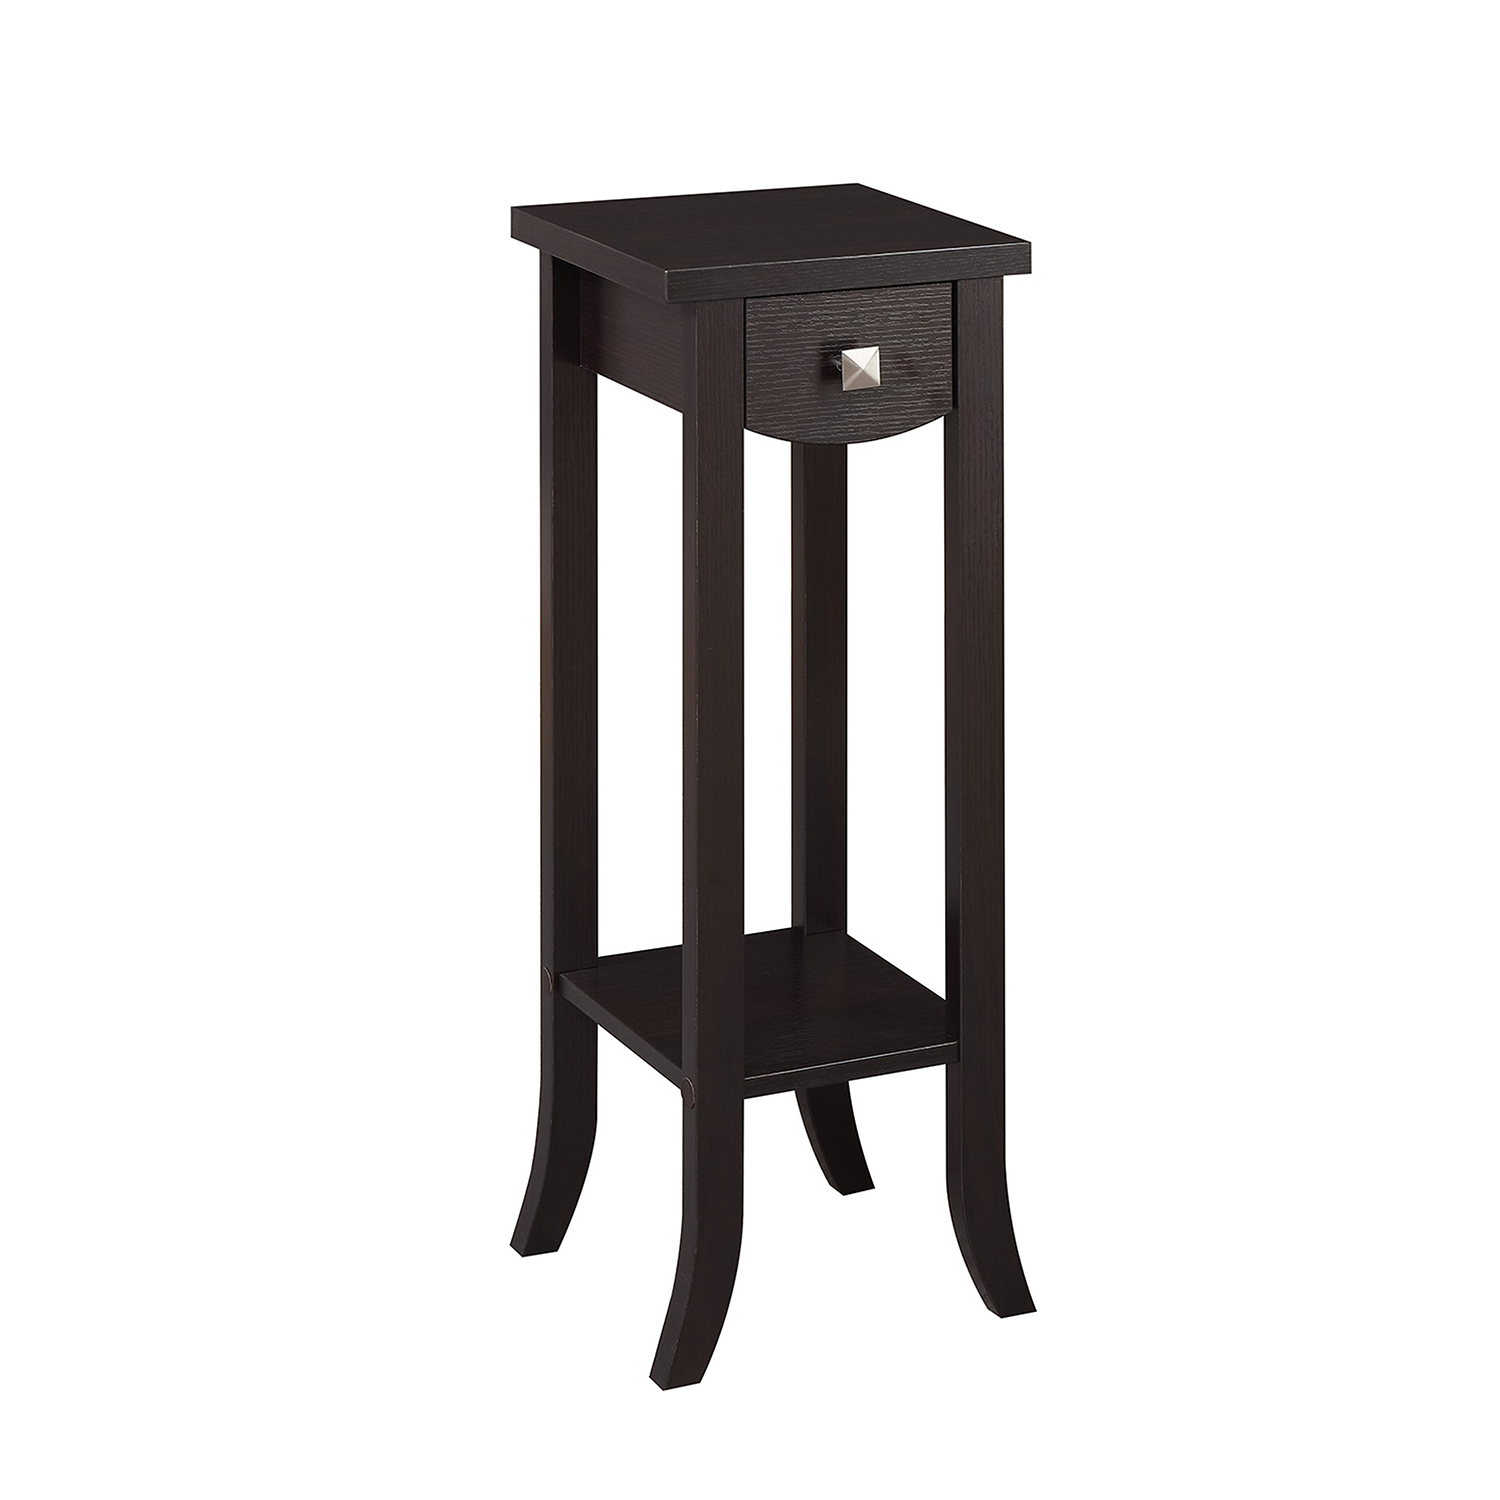 convenience concepts newport espresso prism tall plant stand pedestal accent table hover zoom thin bedside black half moon beachy end tables dale tiffany stained glass lamps